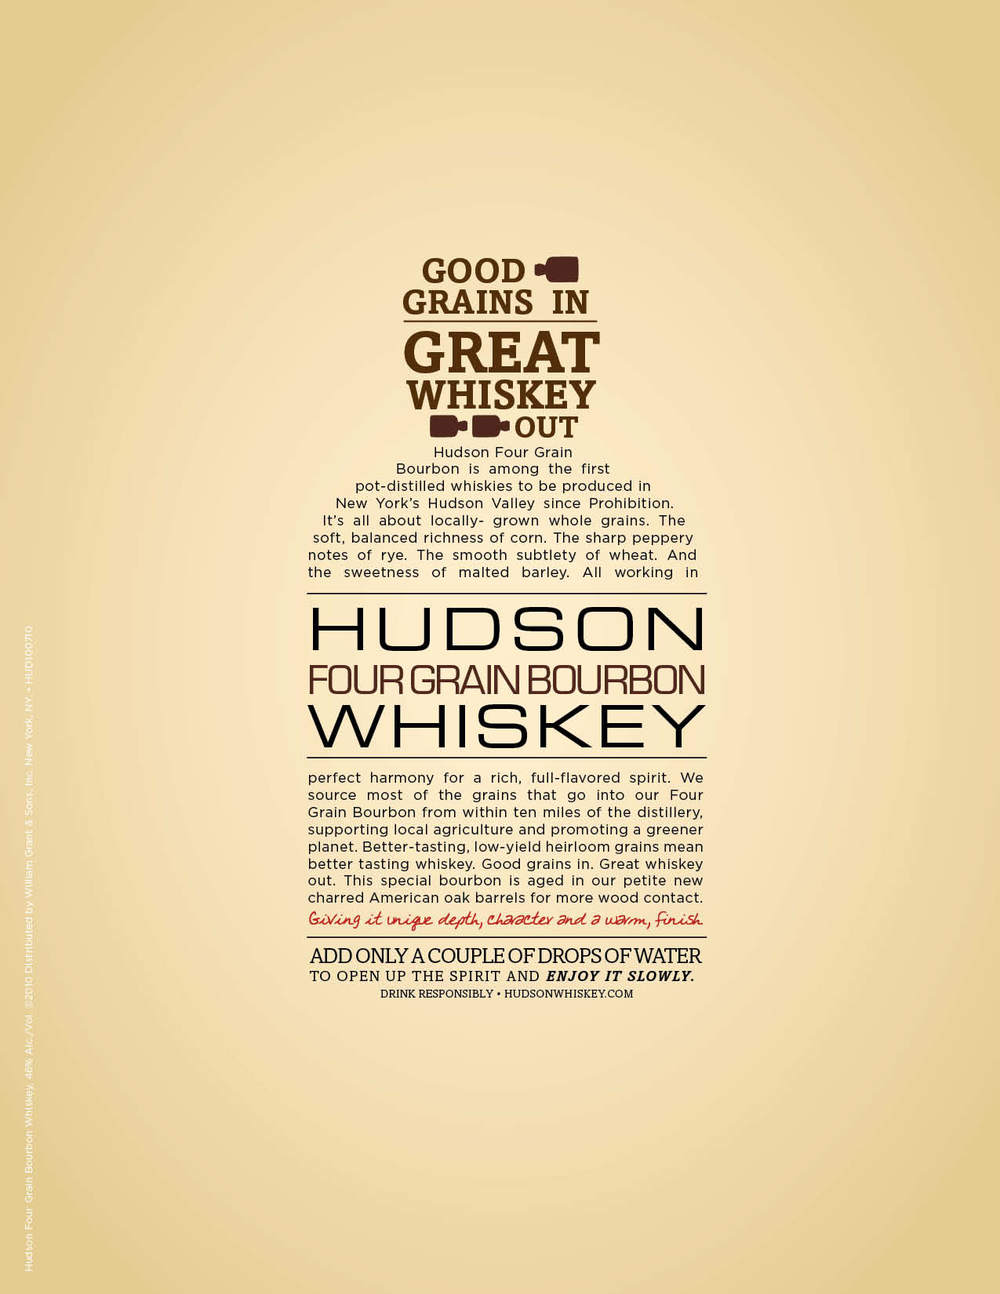 hudson-bottleicon-ads5.jpg